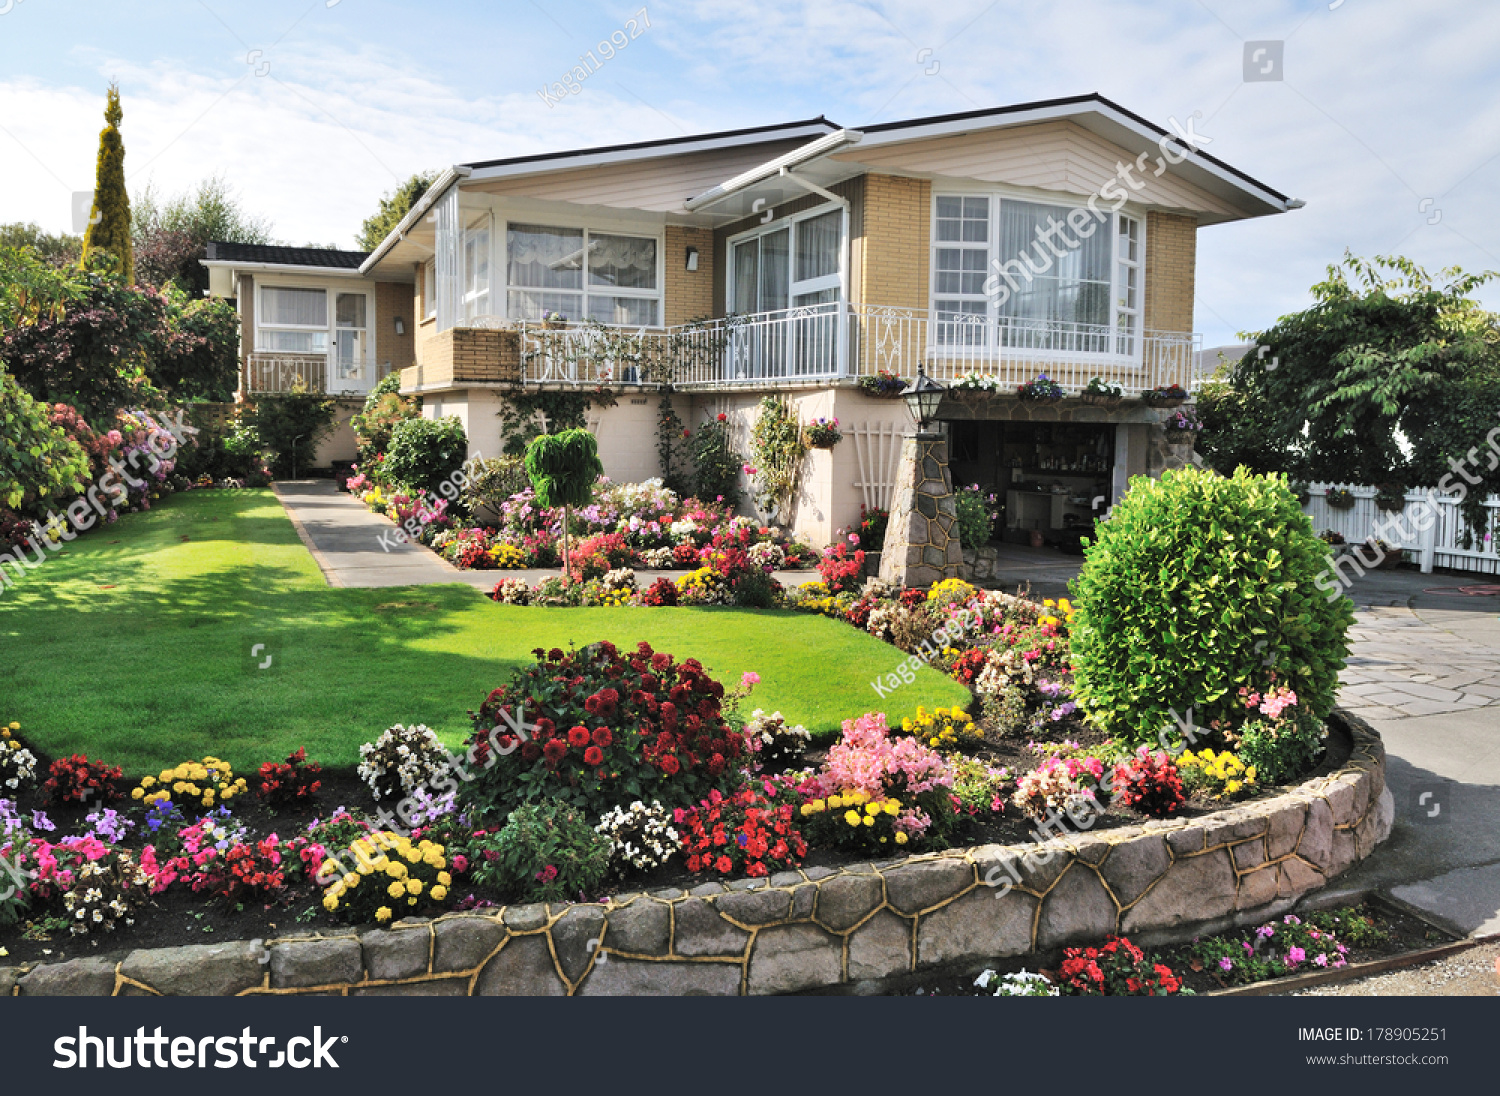 Beautiful Home With Beautiful Flowers Garden Property